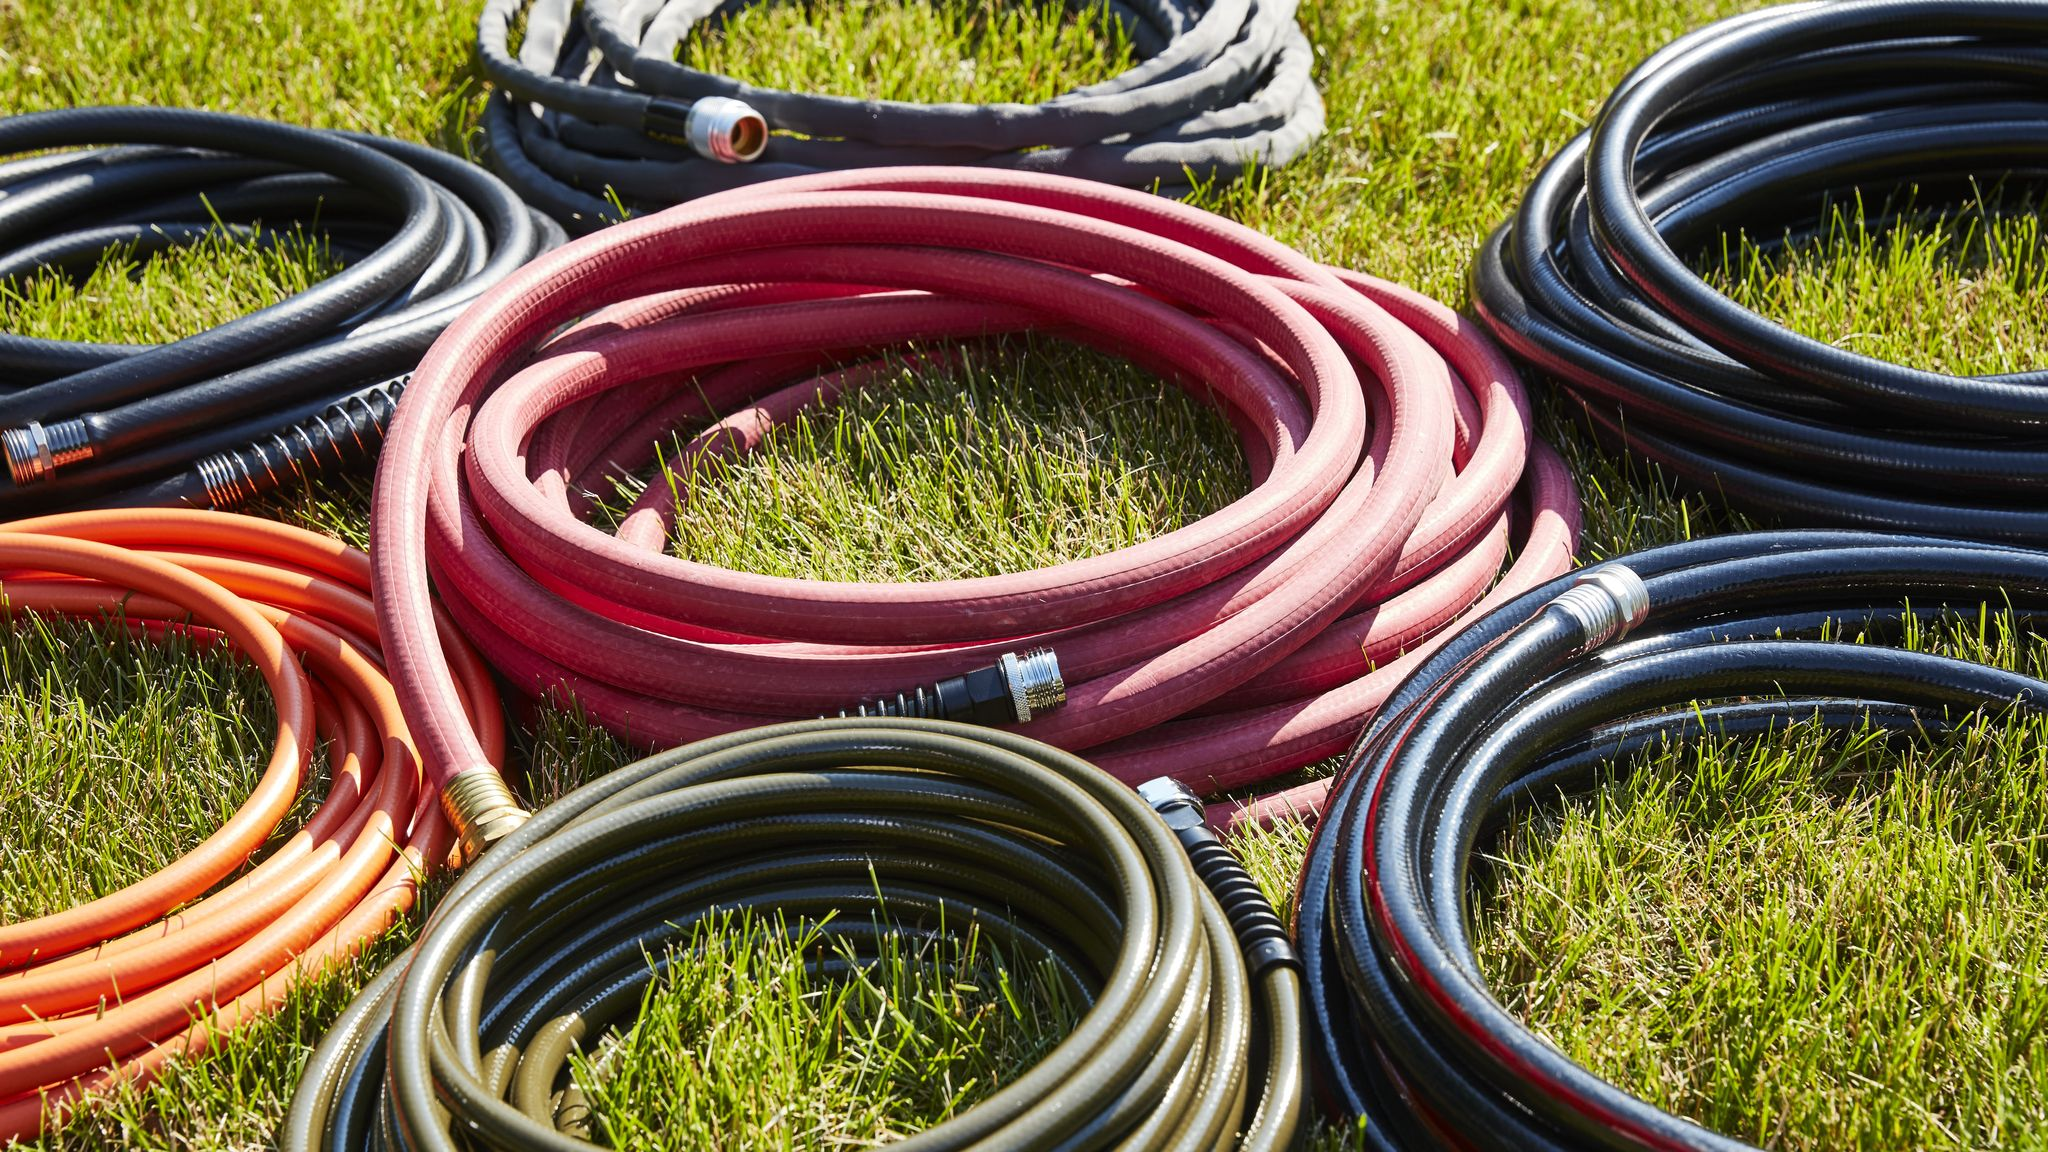 The Best Garden Hoses, for More Than Just Your Garden